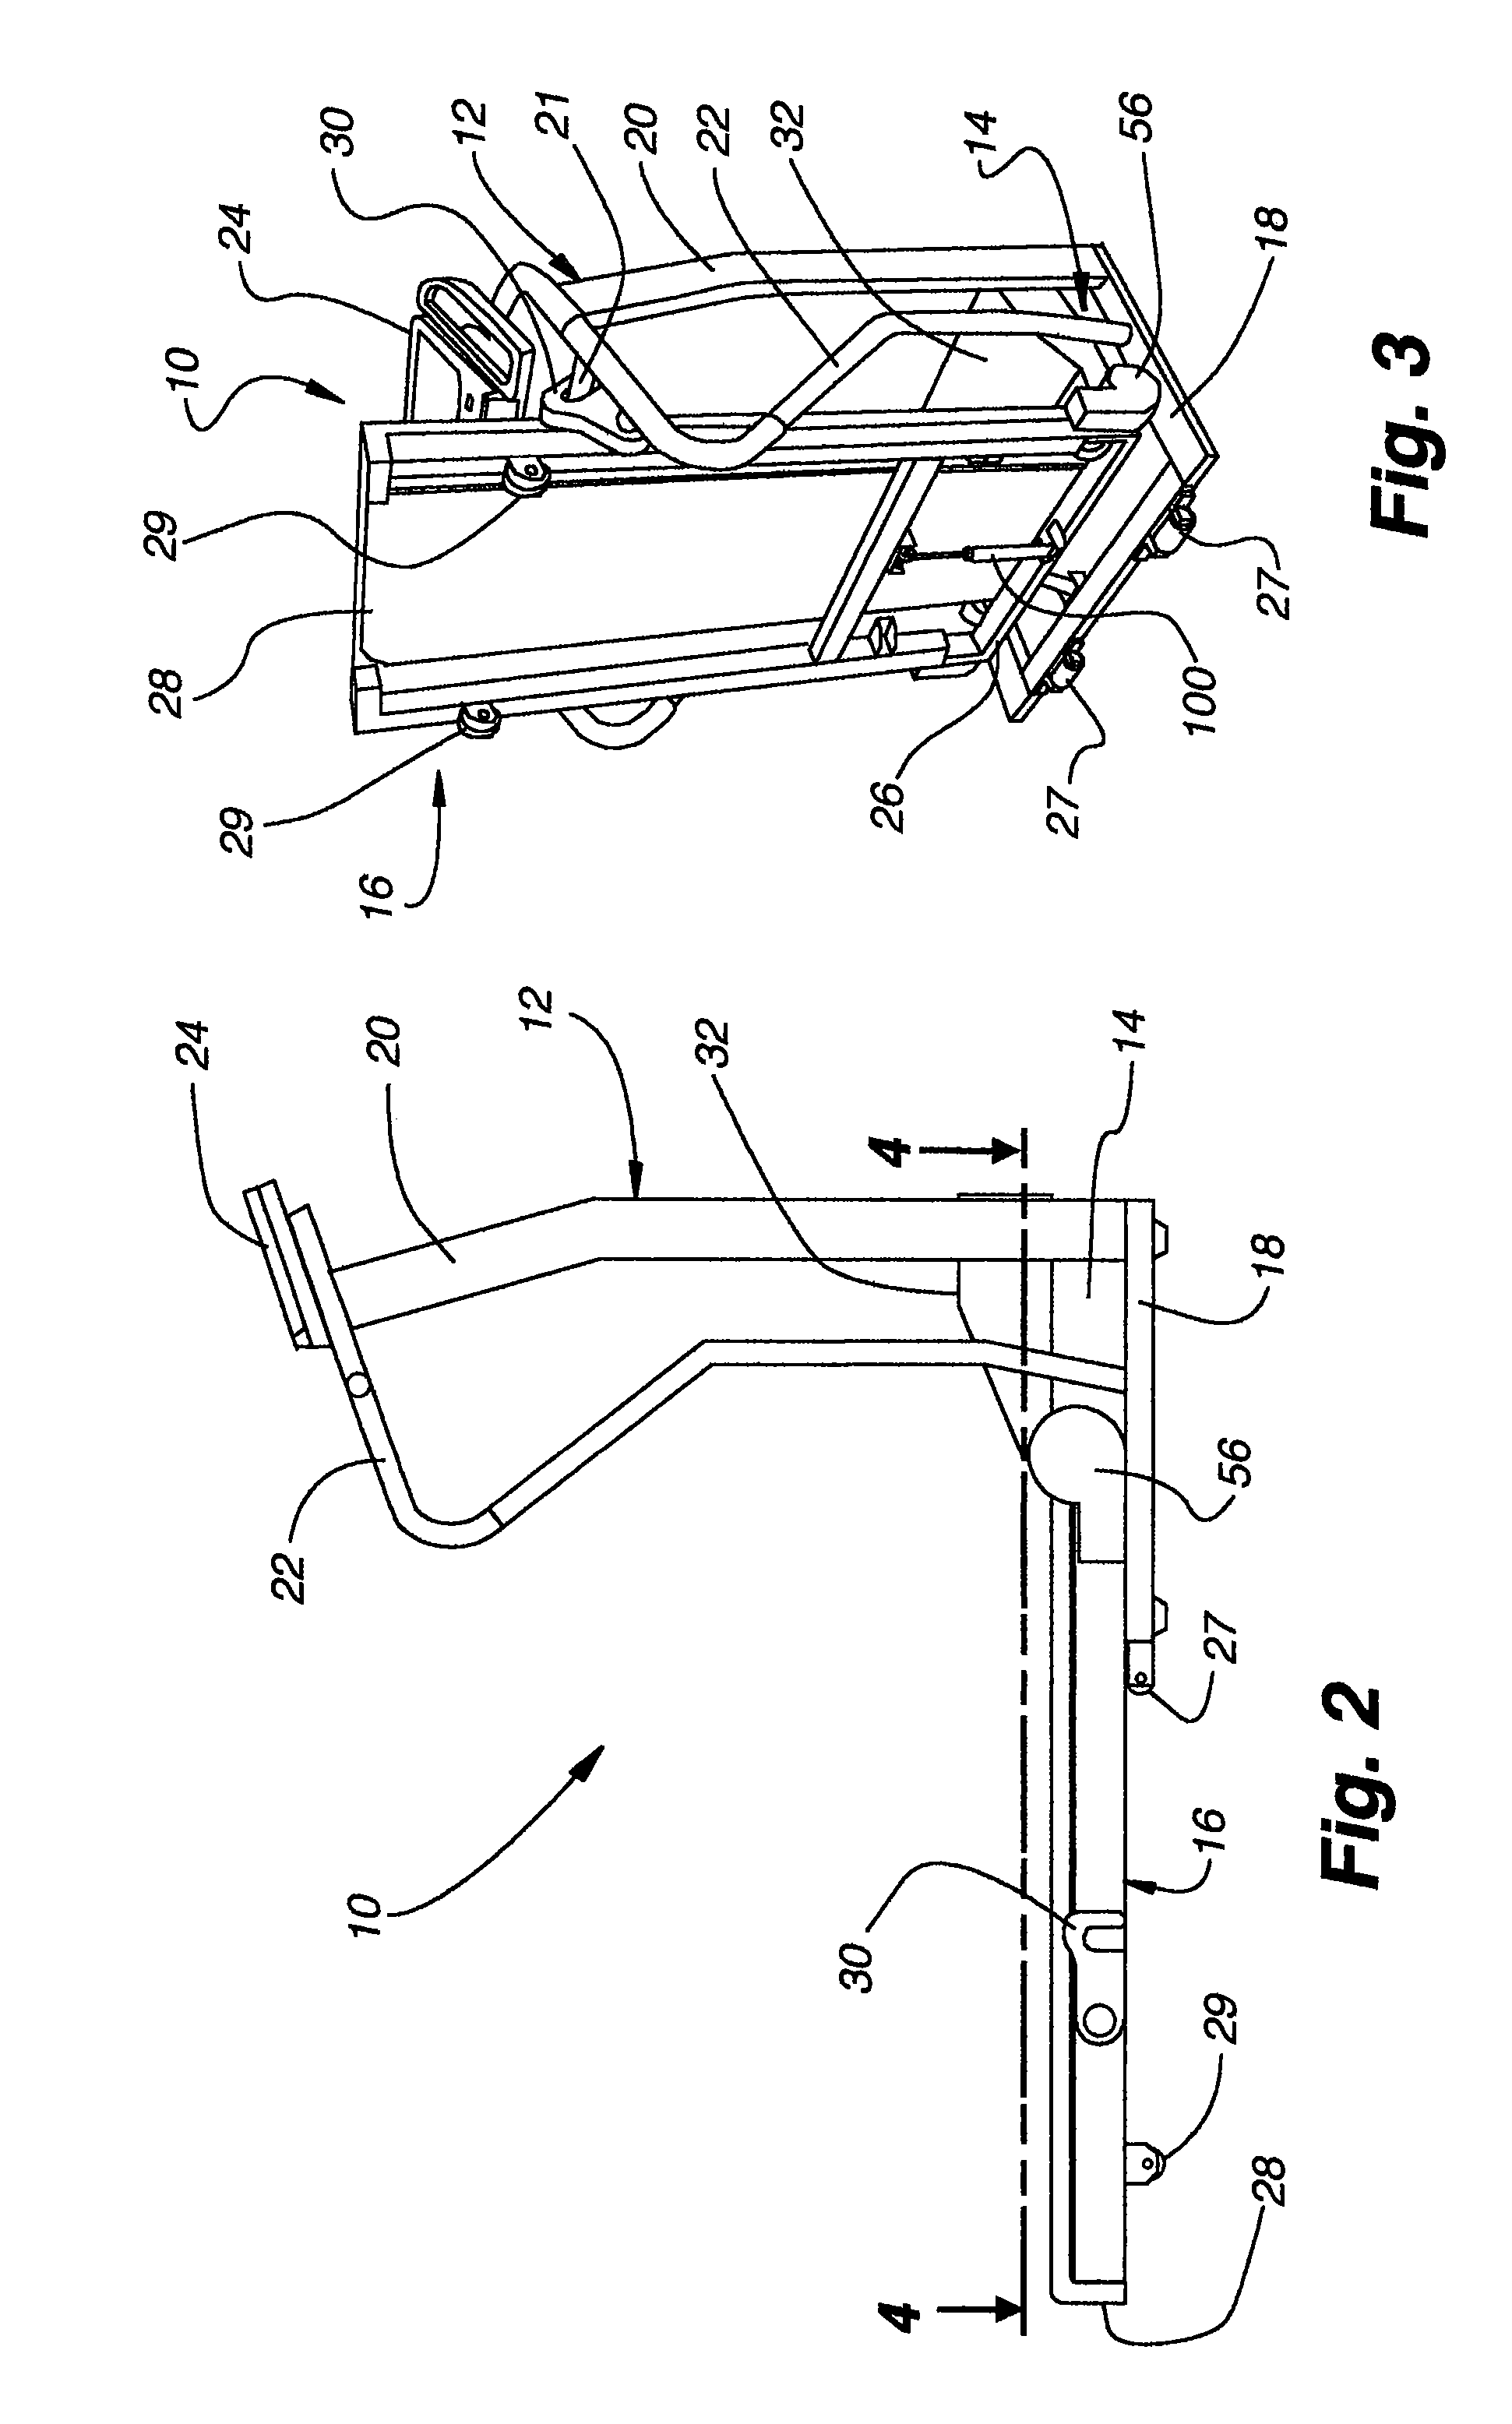 patent us7544153 - treadmill